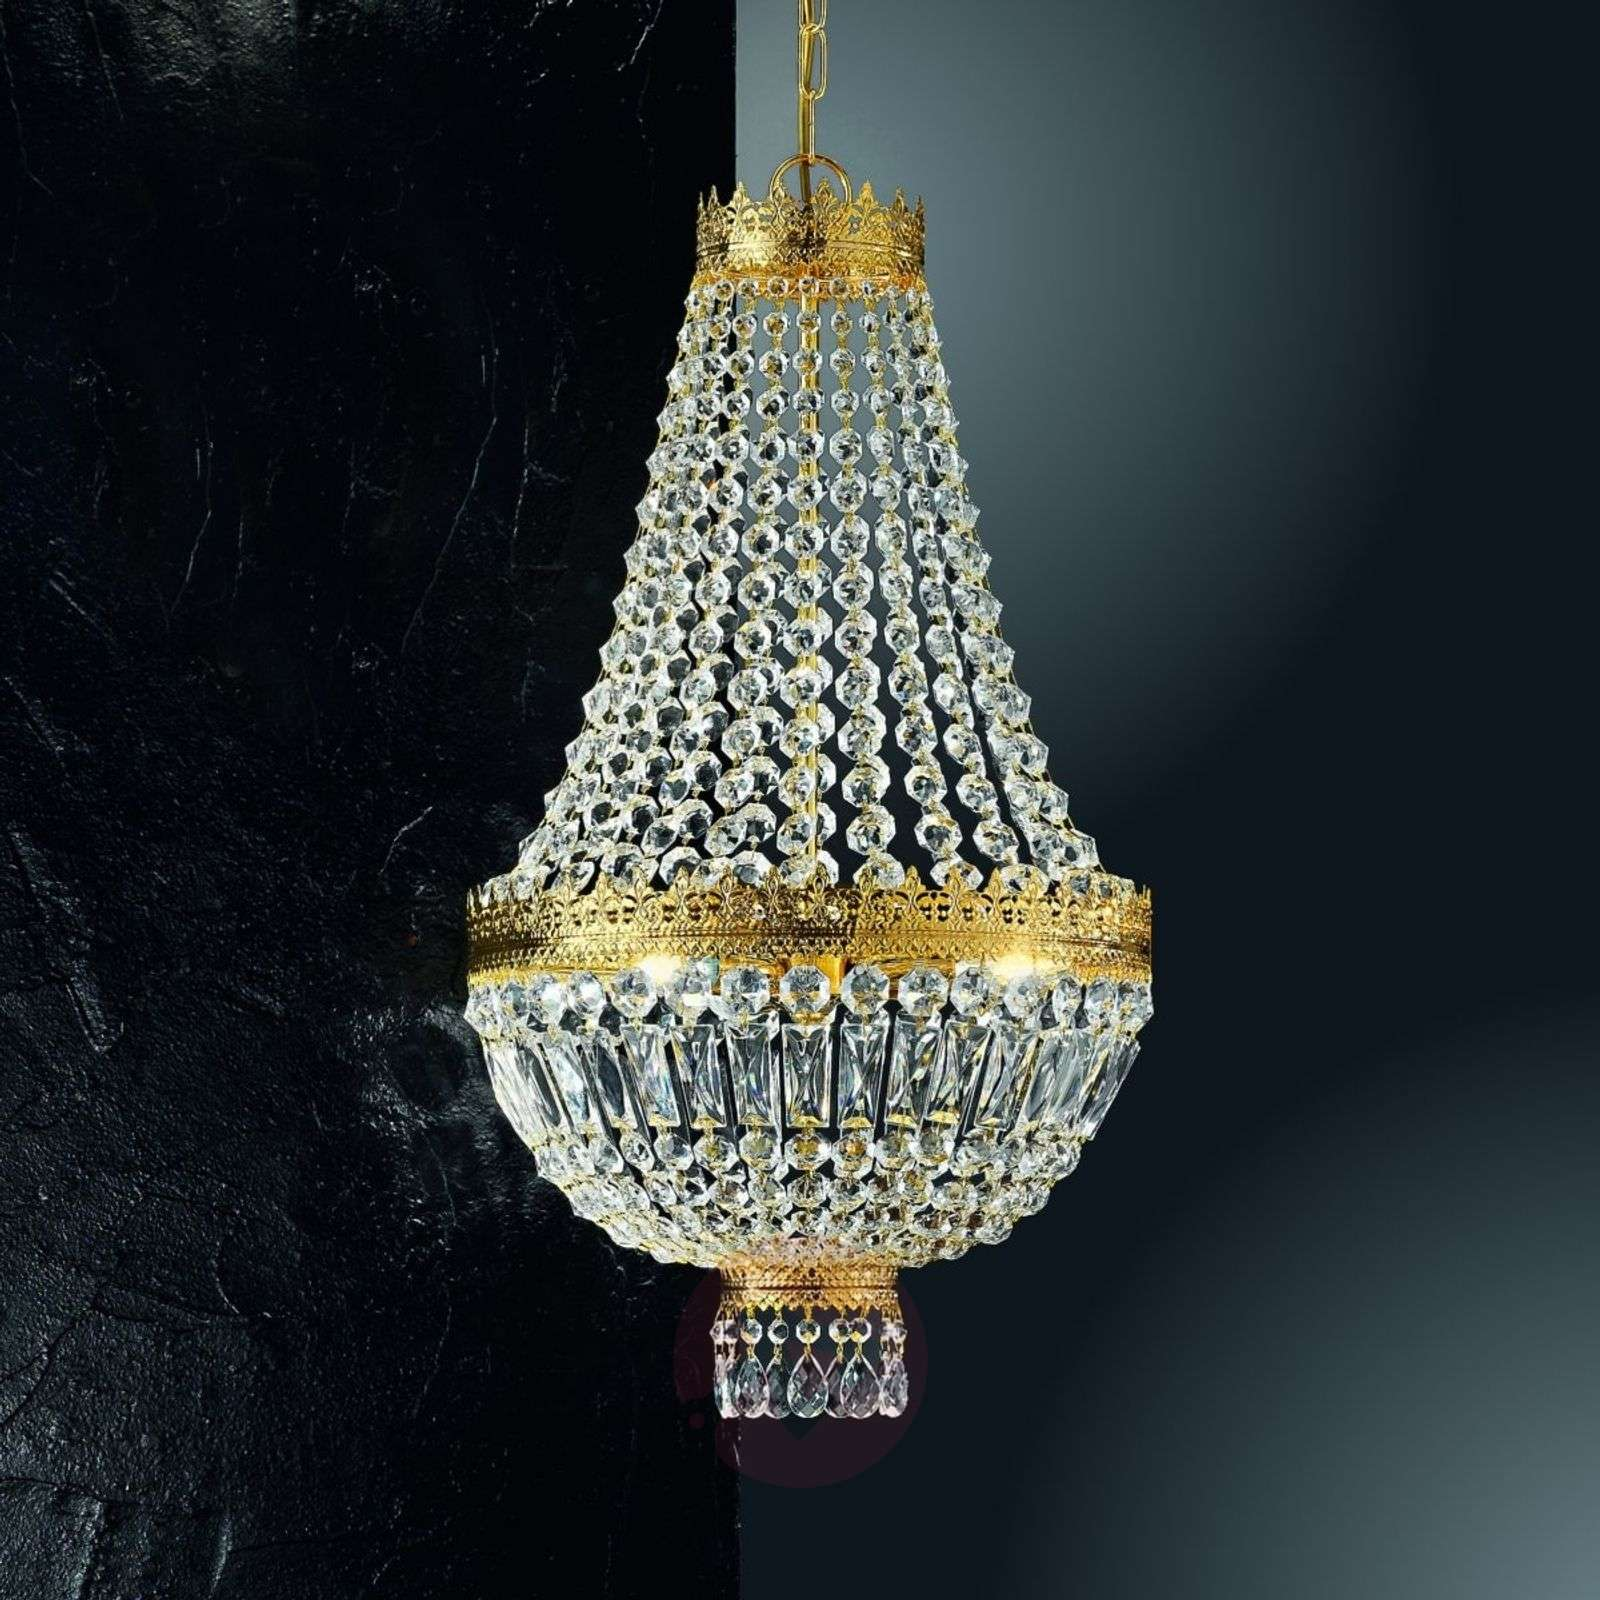 24 carat gold-plated hanging light Cupola-5505538-01